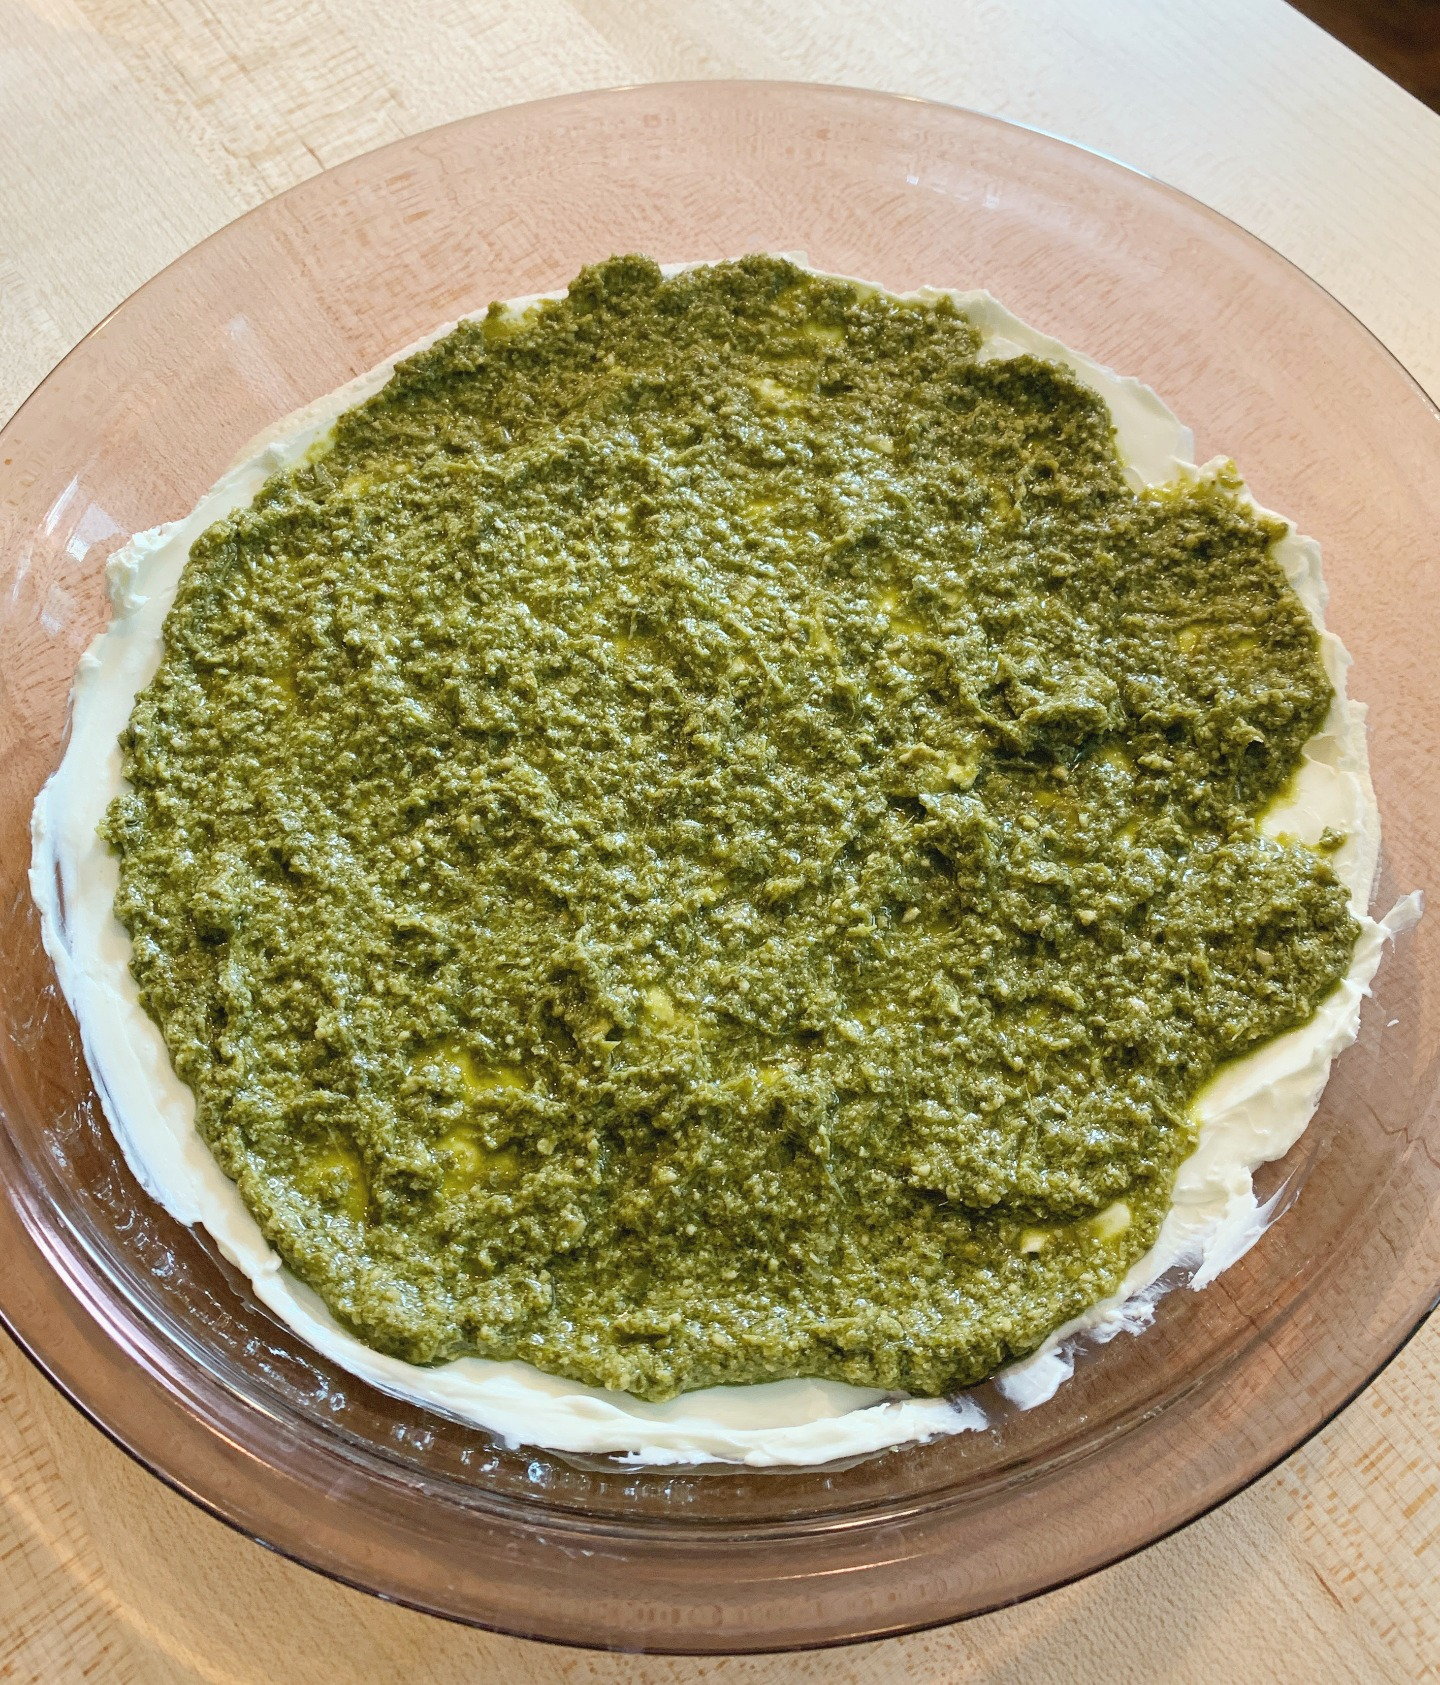 pie dish with cream cheese spread on the bottom and pesto on top